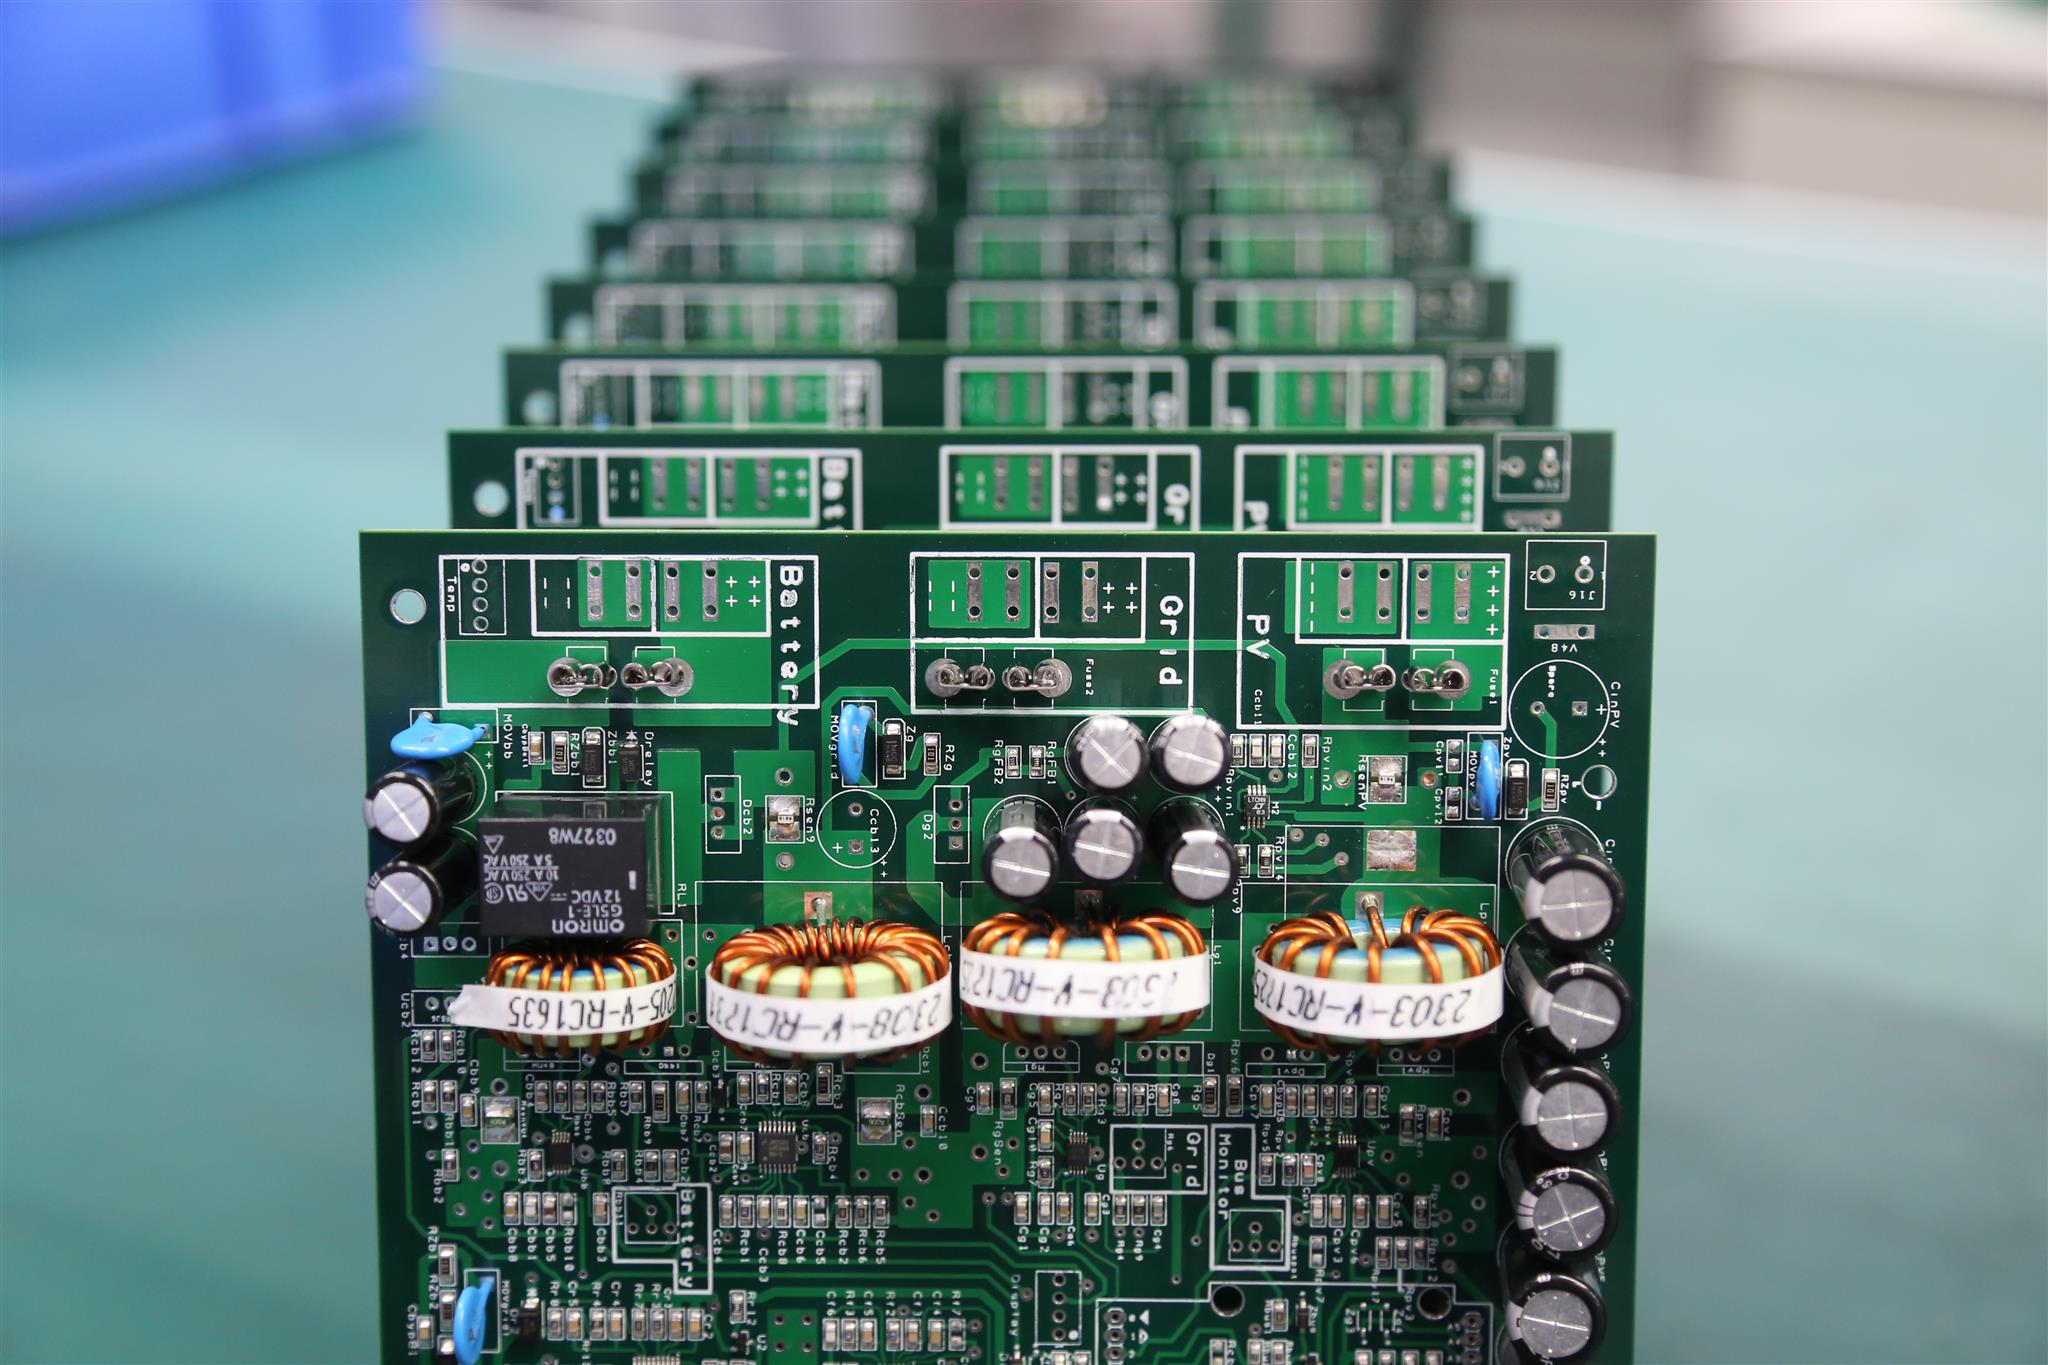 Pcbgogo A Professional Pcb Prototype And Assembly Manufacturer We Circuit Board Machine One The Other Hand There Are Seven New Drilling Machines In Fabrication Two Working Now Is With 6 Heads